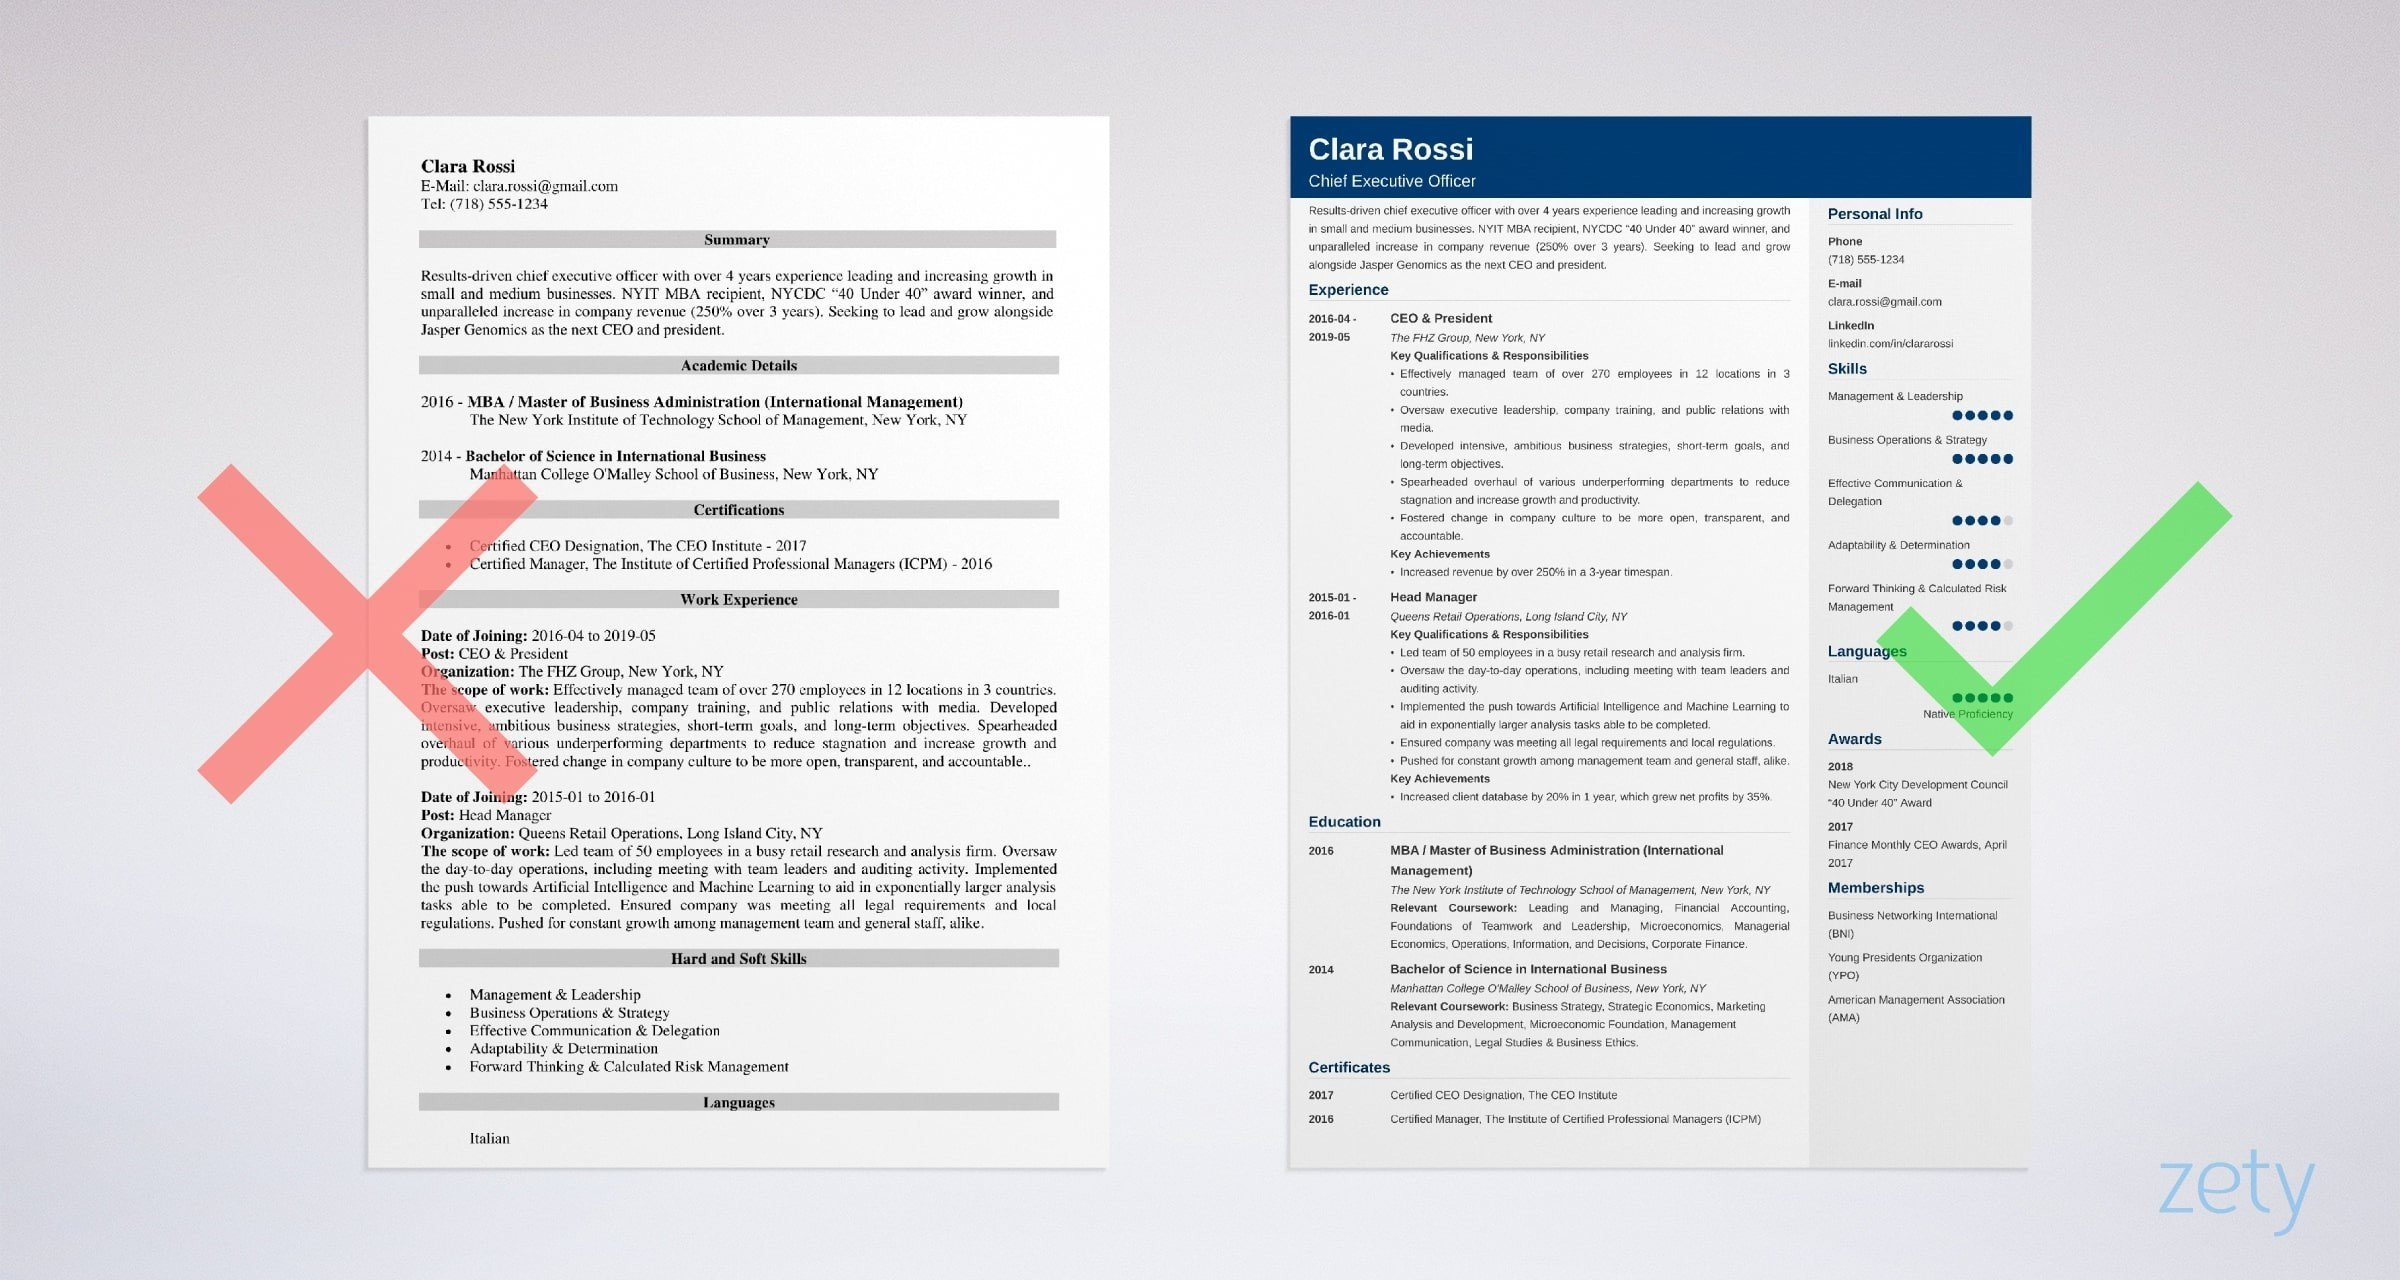 chief executive officer ceo resume template examples word free example bpt format good Resume Ceo Resume Template Word Free